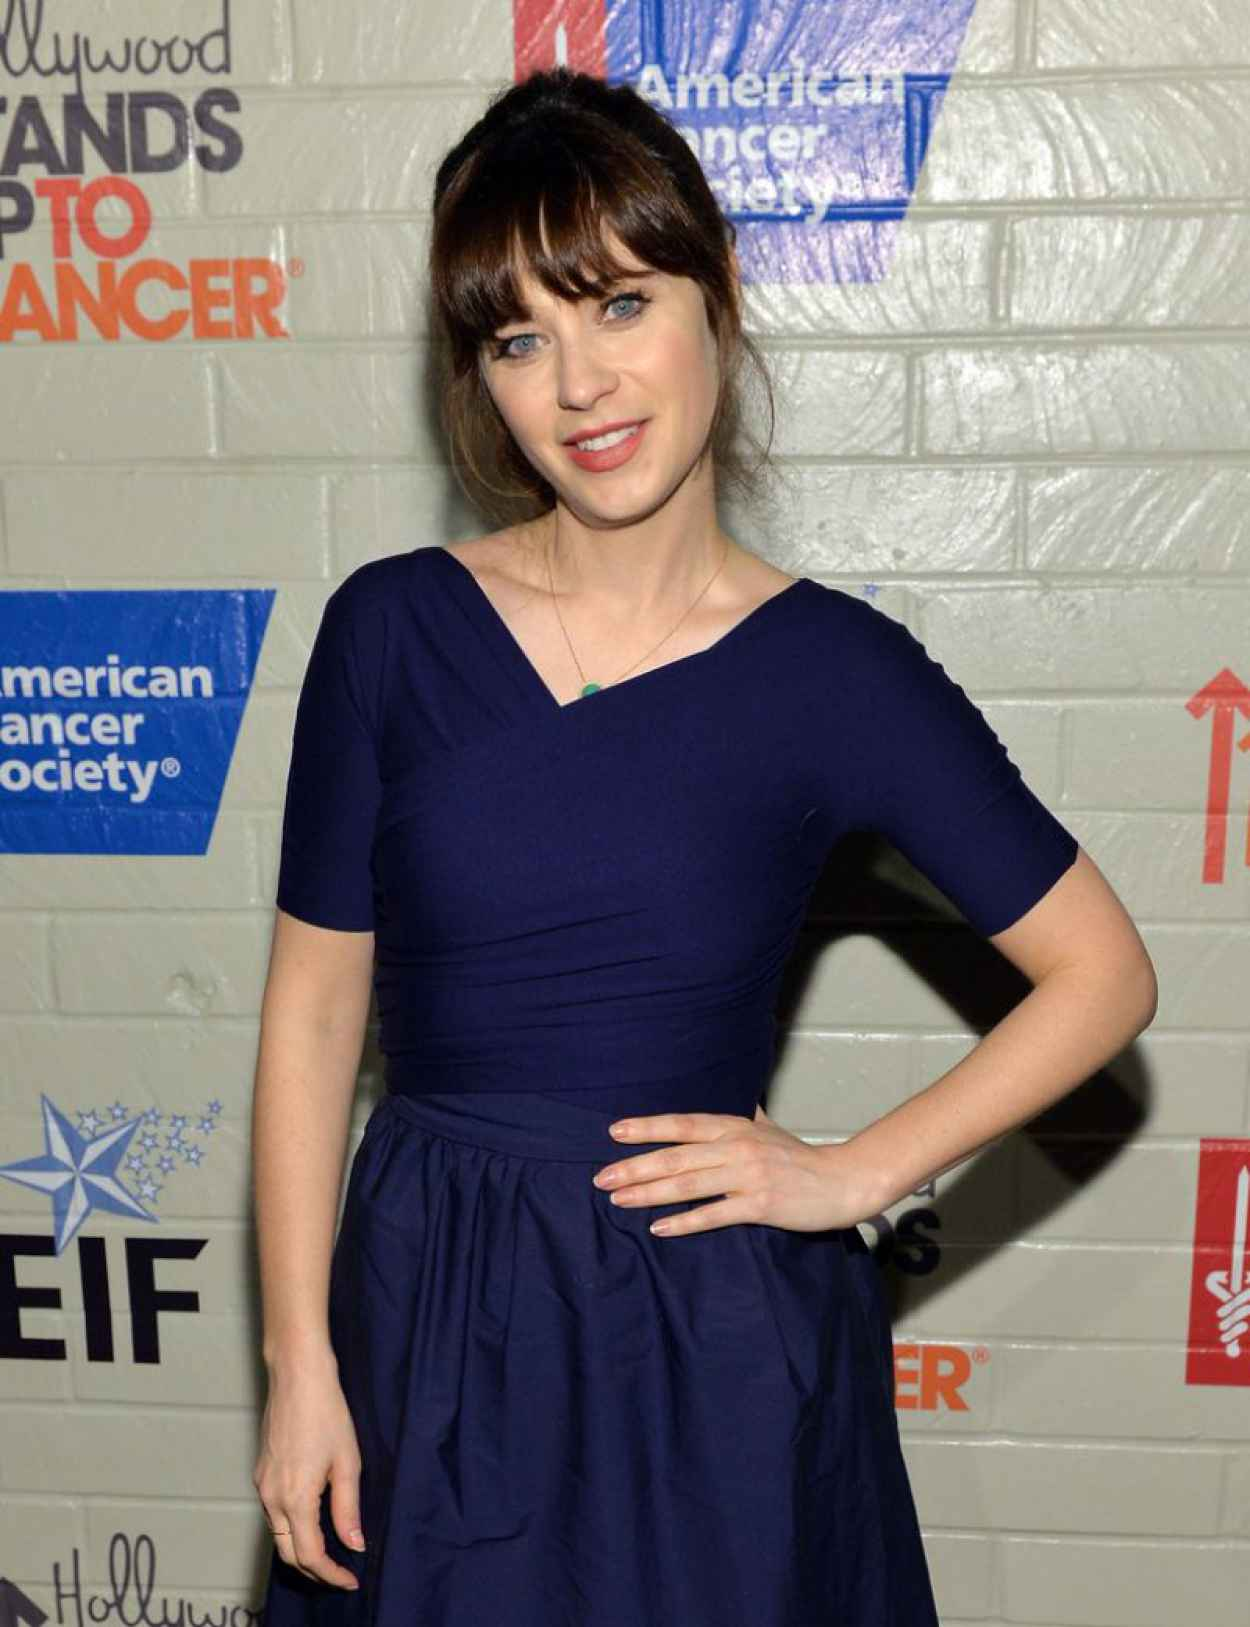 Zooey Deschanel - 2015 Hollywood Stands Up To Cancer Event-1